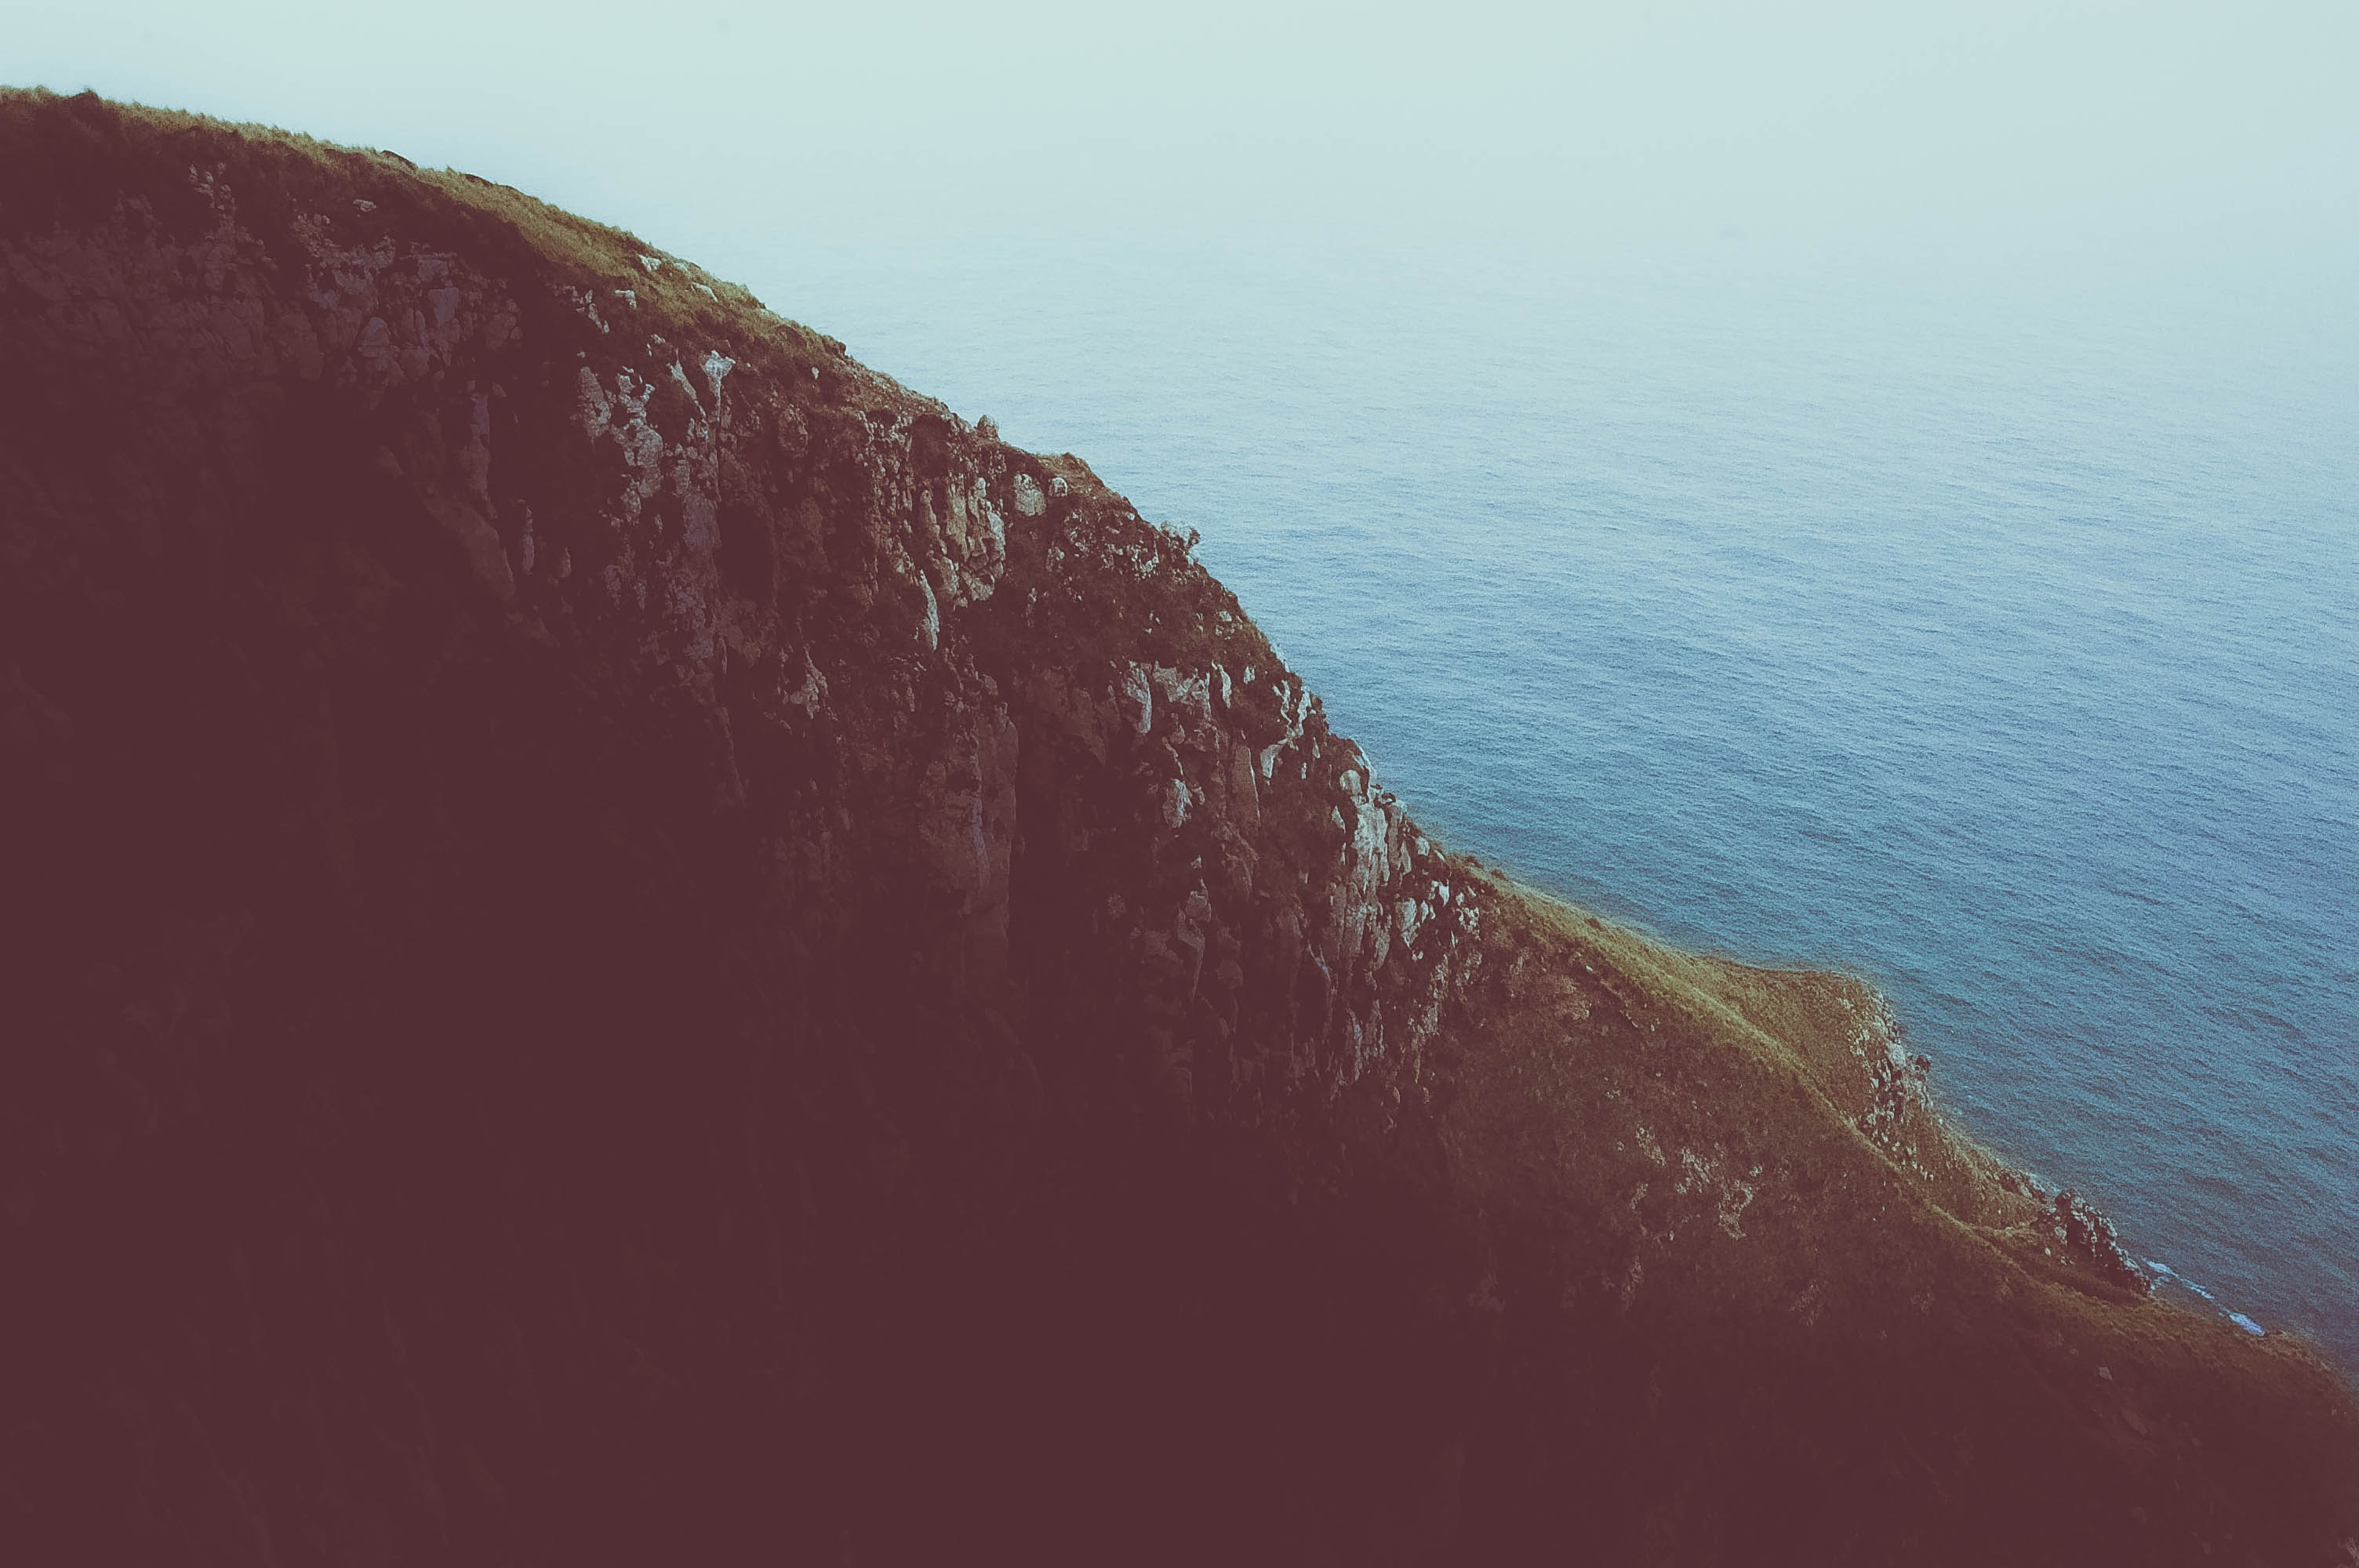 photo of cliff near calm sea during daytime